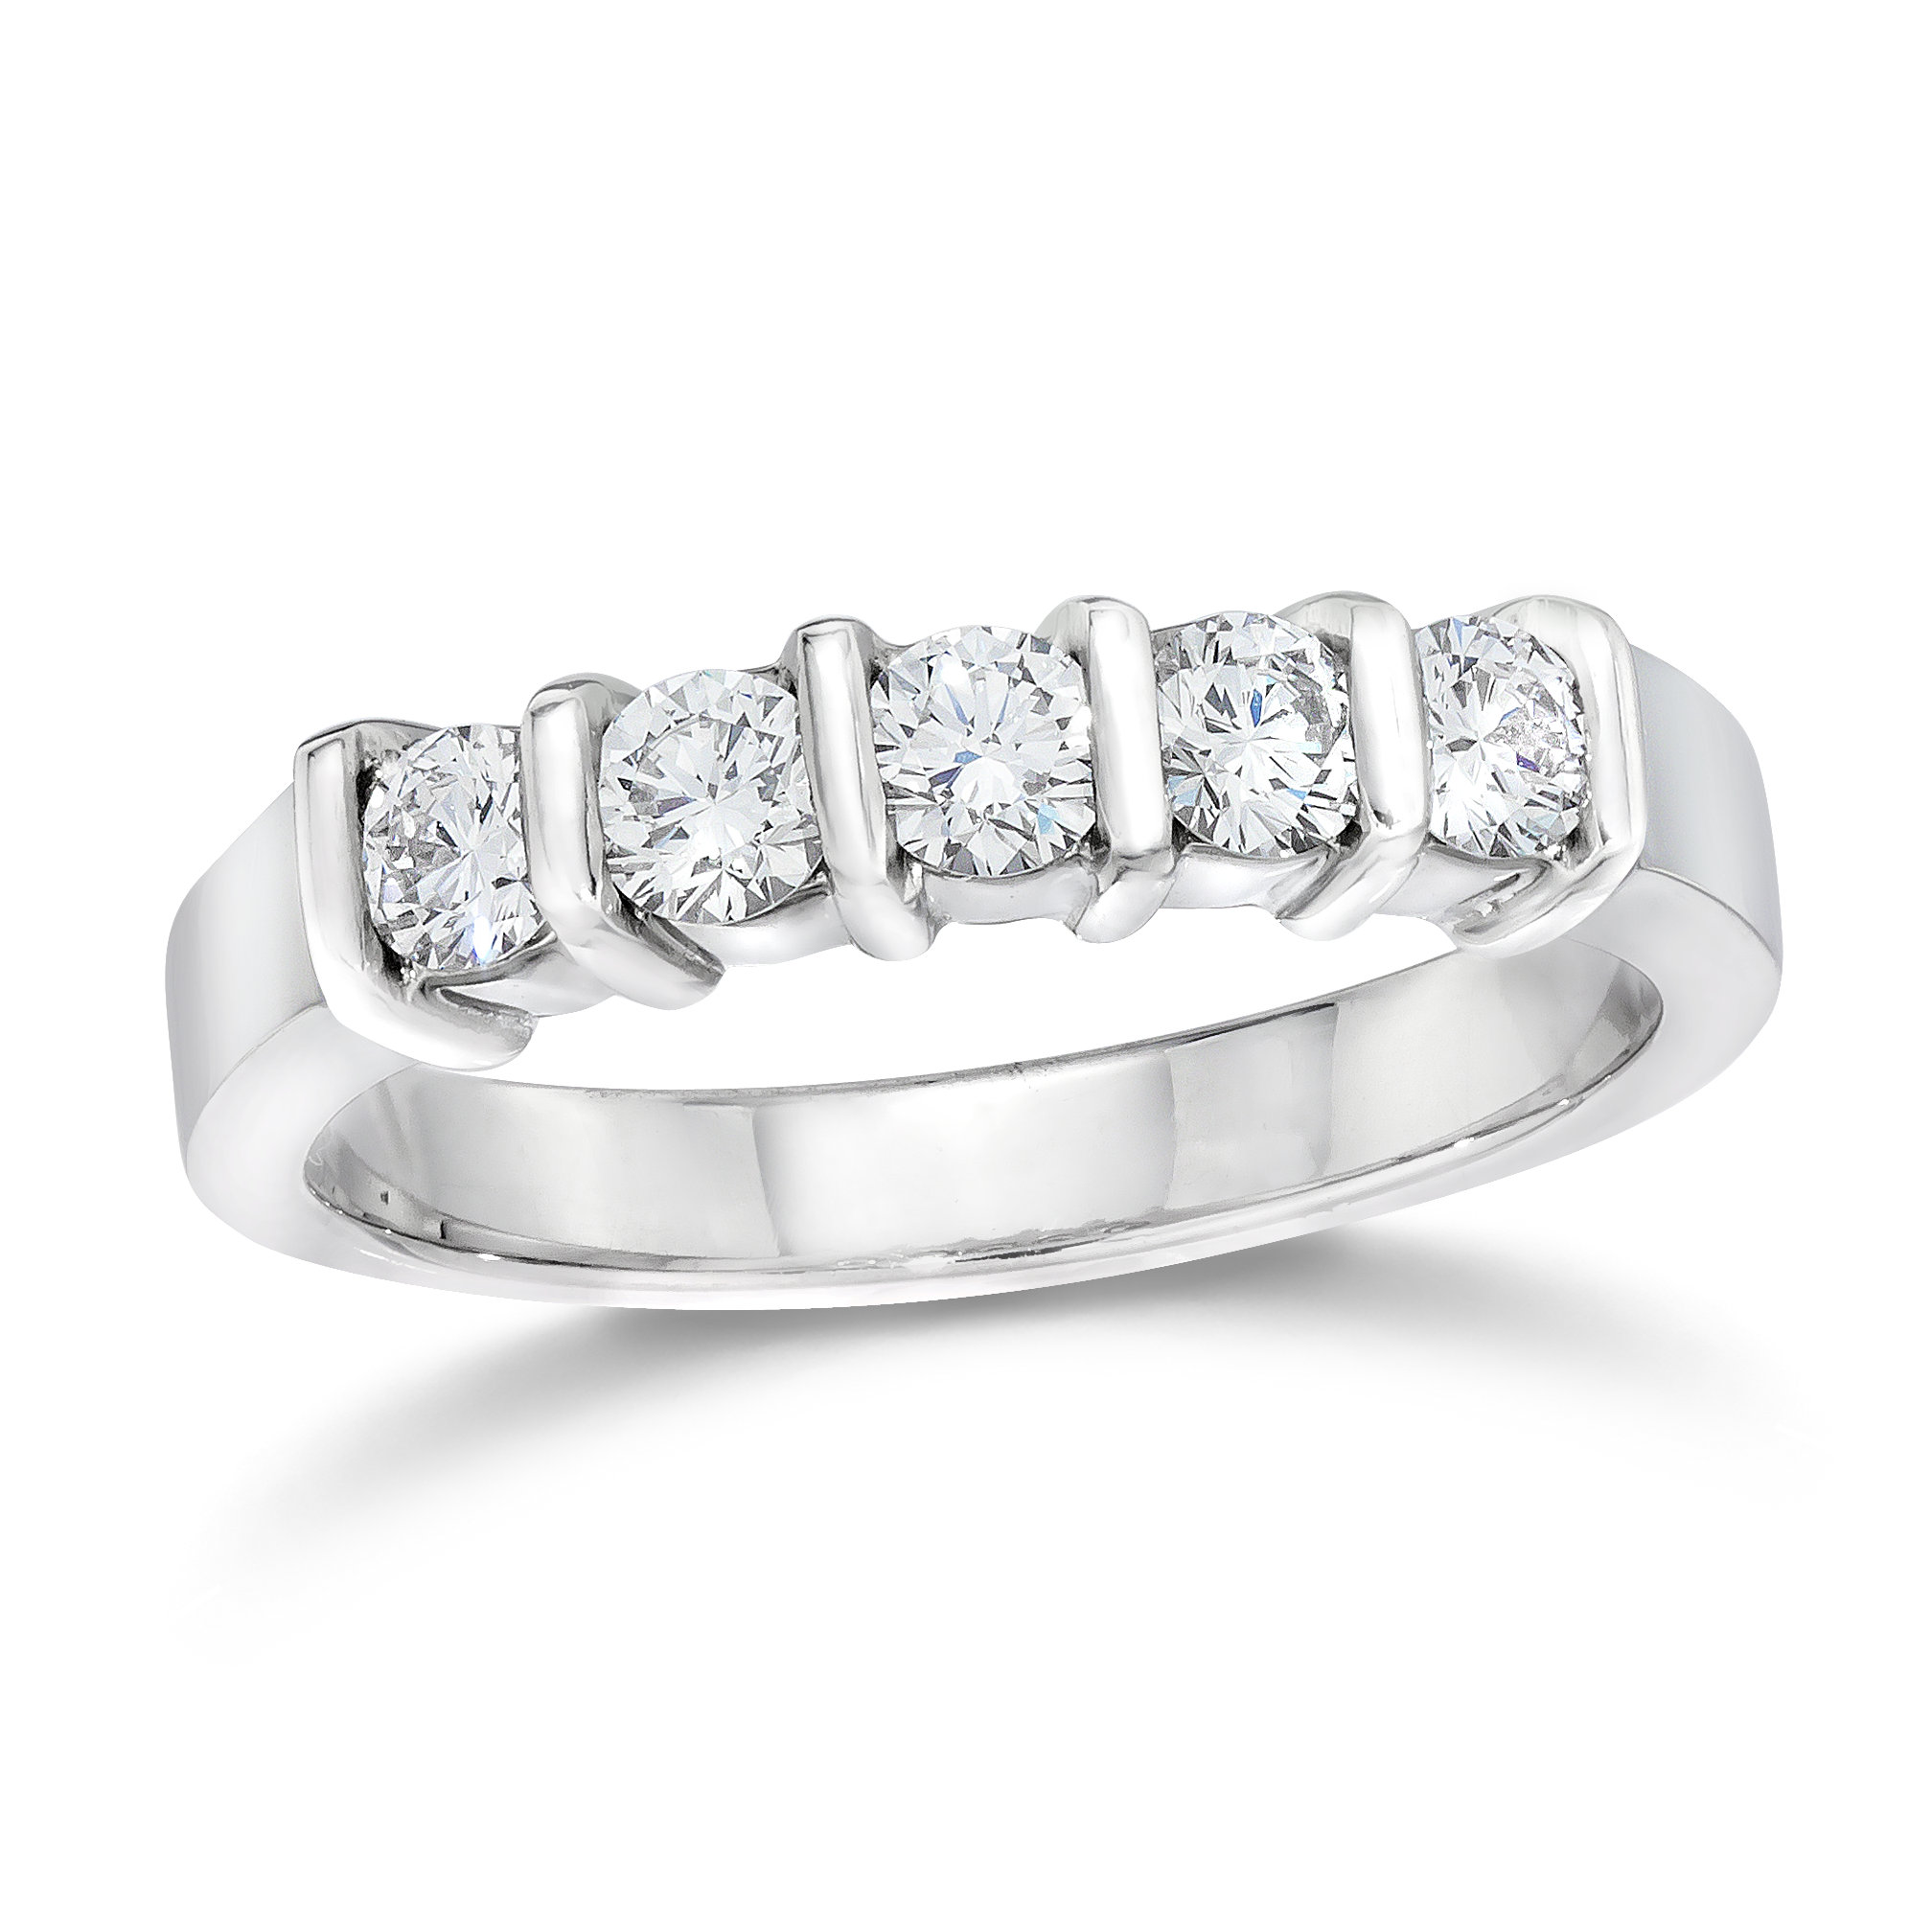 at pin jewelers engagement yale rings pinterest ring parade